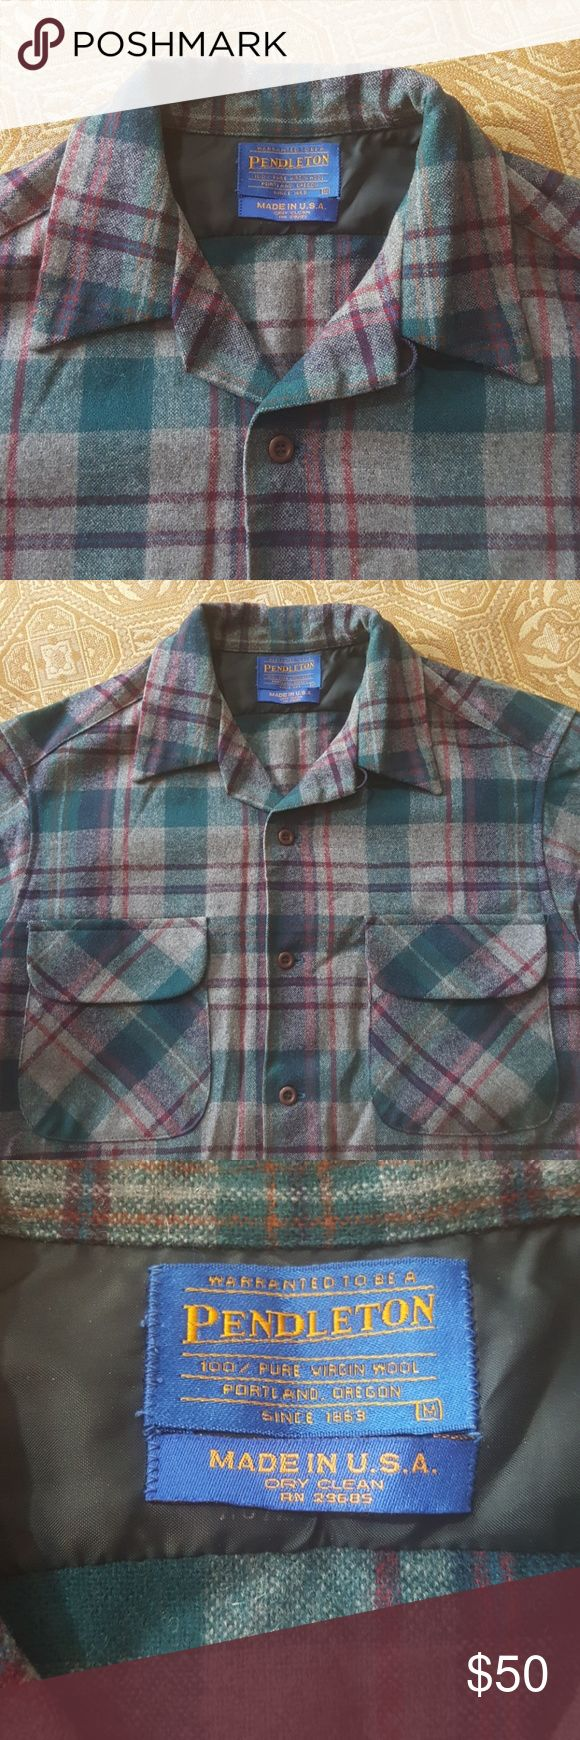 Pendleton wool button down shirt M Warranted to be a Pendleton wool button-down shirt. 100% virgin wool. Portland Oregon. Since 1863. Size medium. Made in the USA. Two pockets on the chest. Colors burgundy red grey green plaid. Pendleton Shirts Casual Button Down Shirts